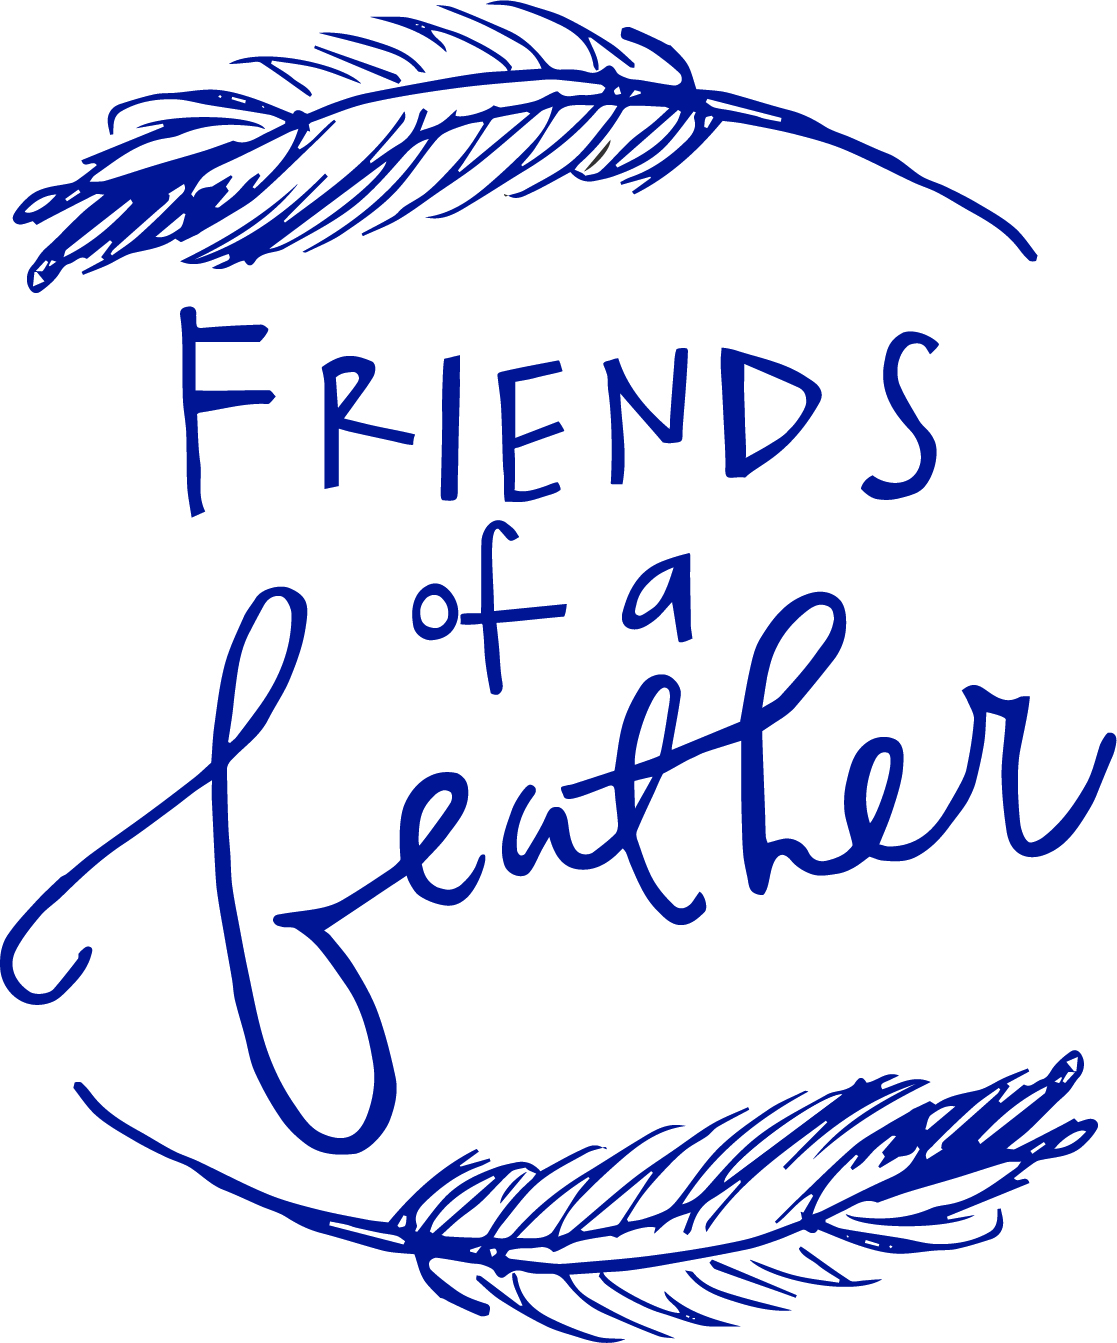 FriendsFeatherLogo_v2.jpg